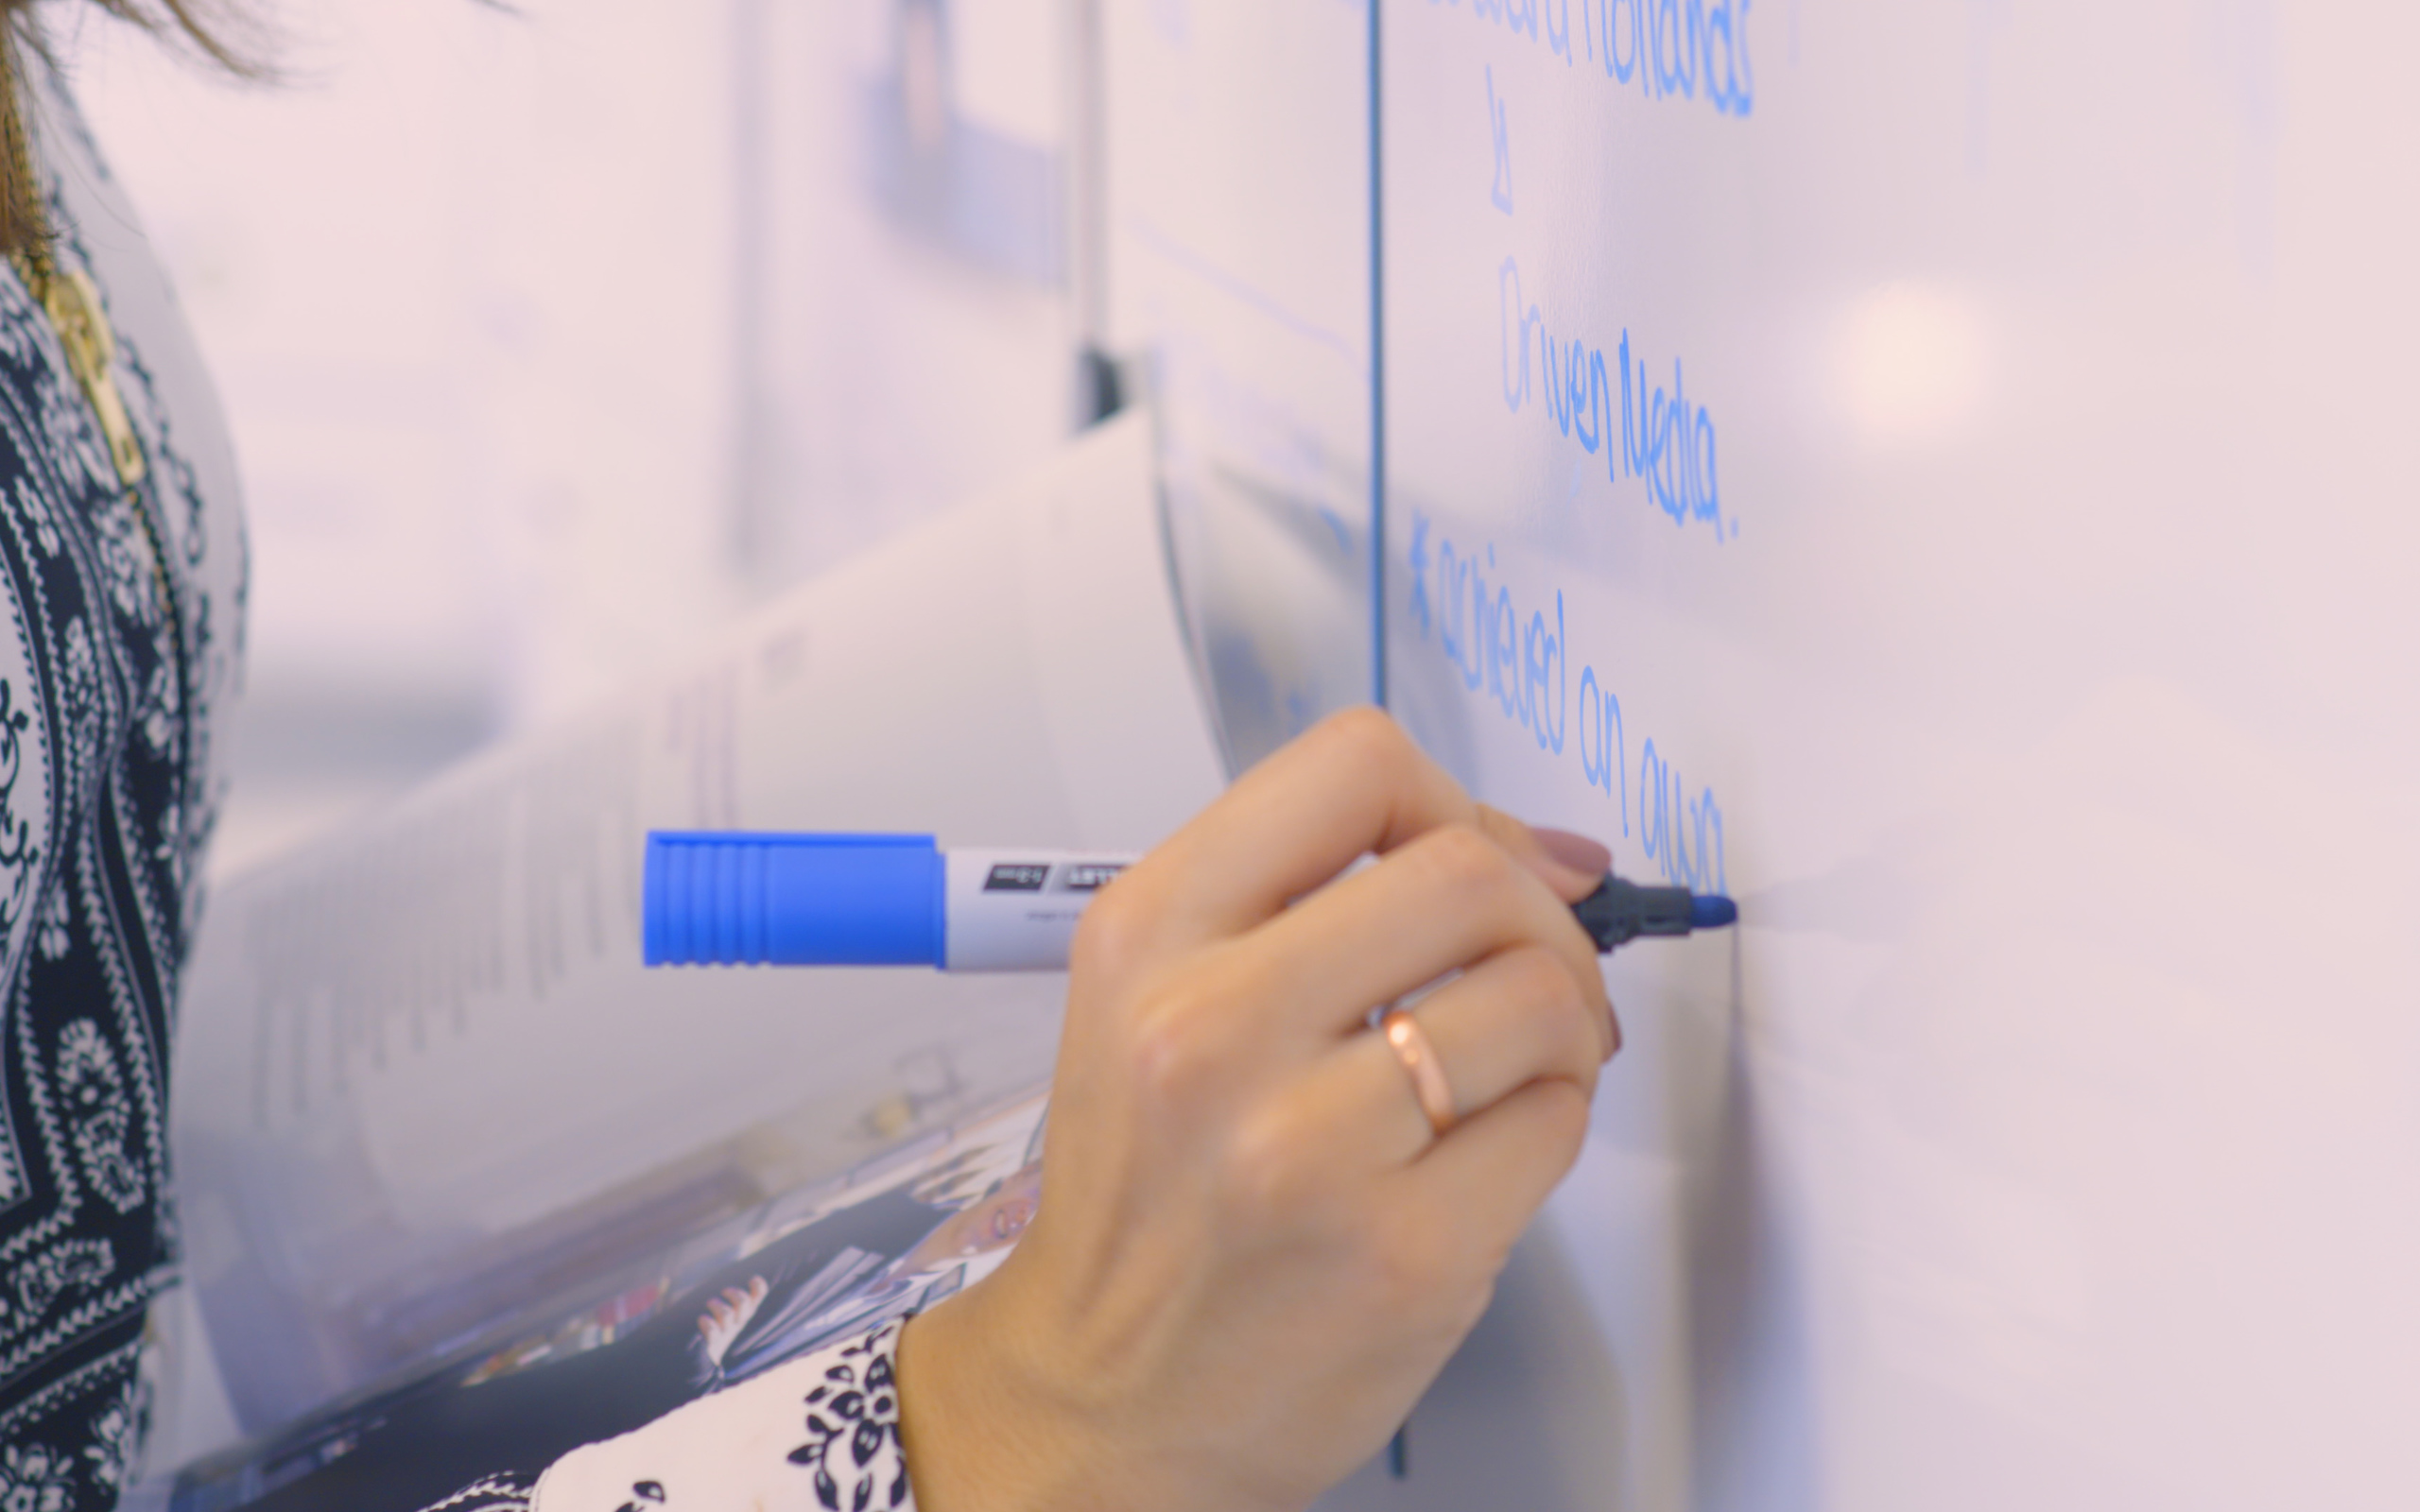 Close up of hand writing on a whiteboard